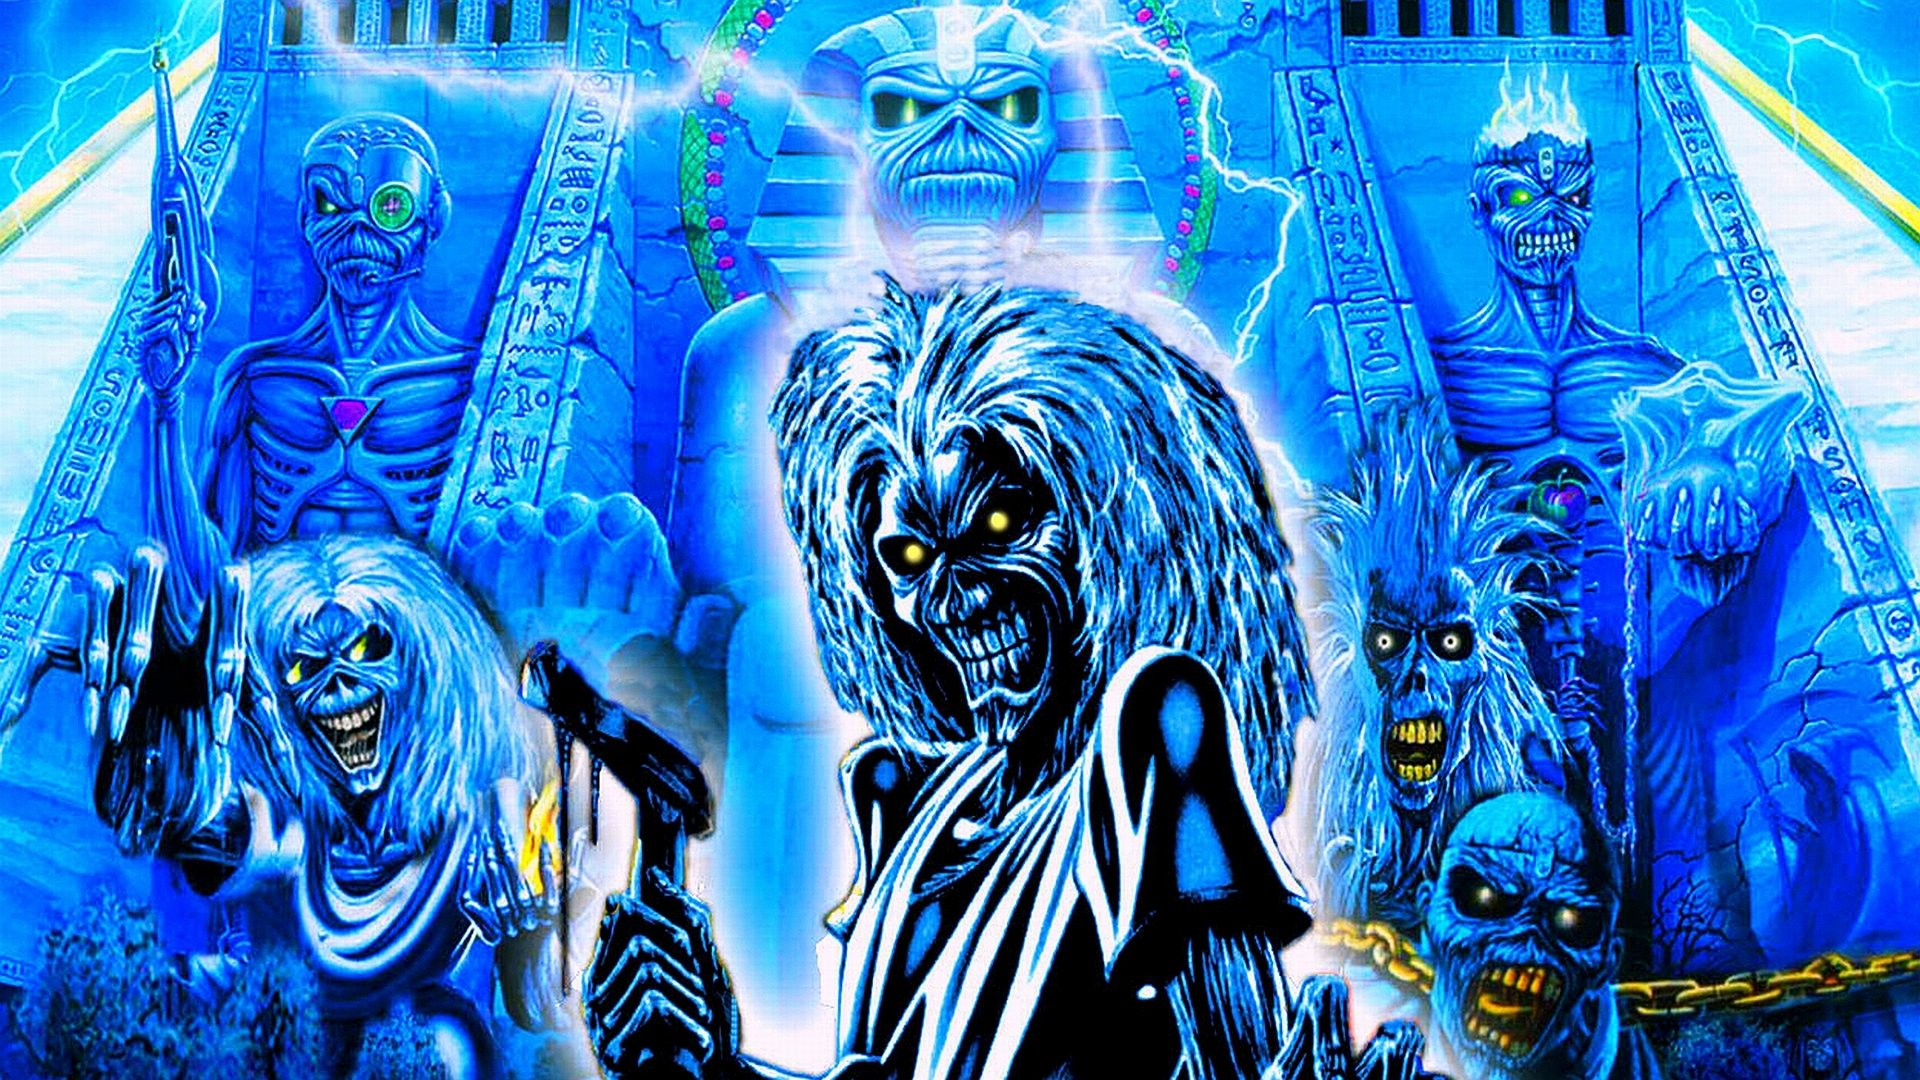 Iron Maiden Psychedelic Wallpaper